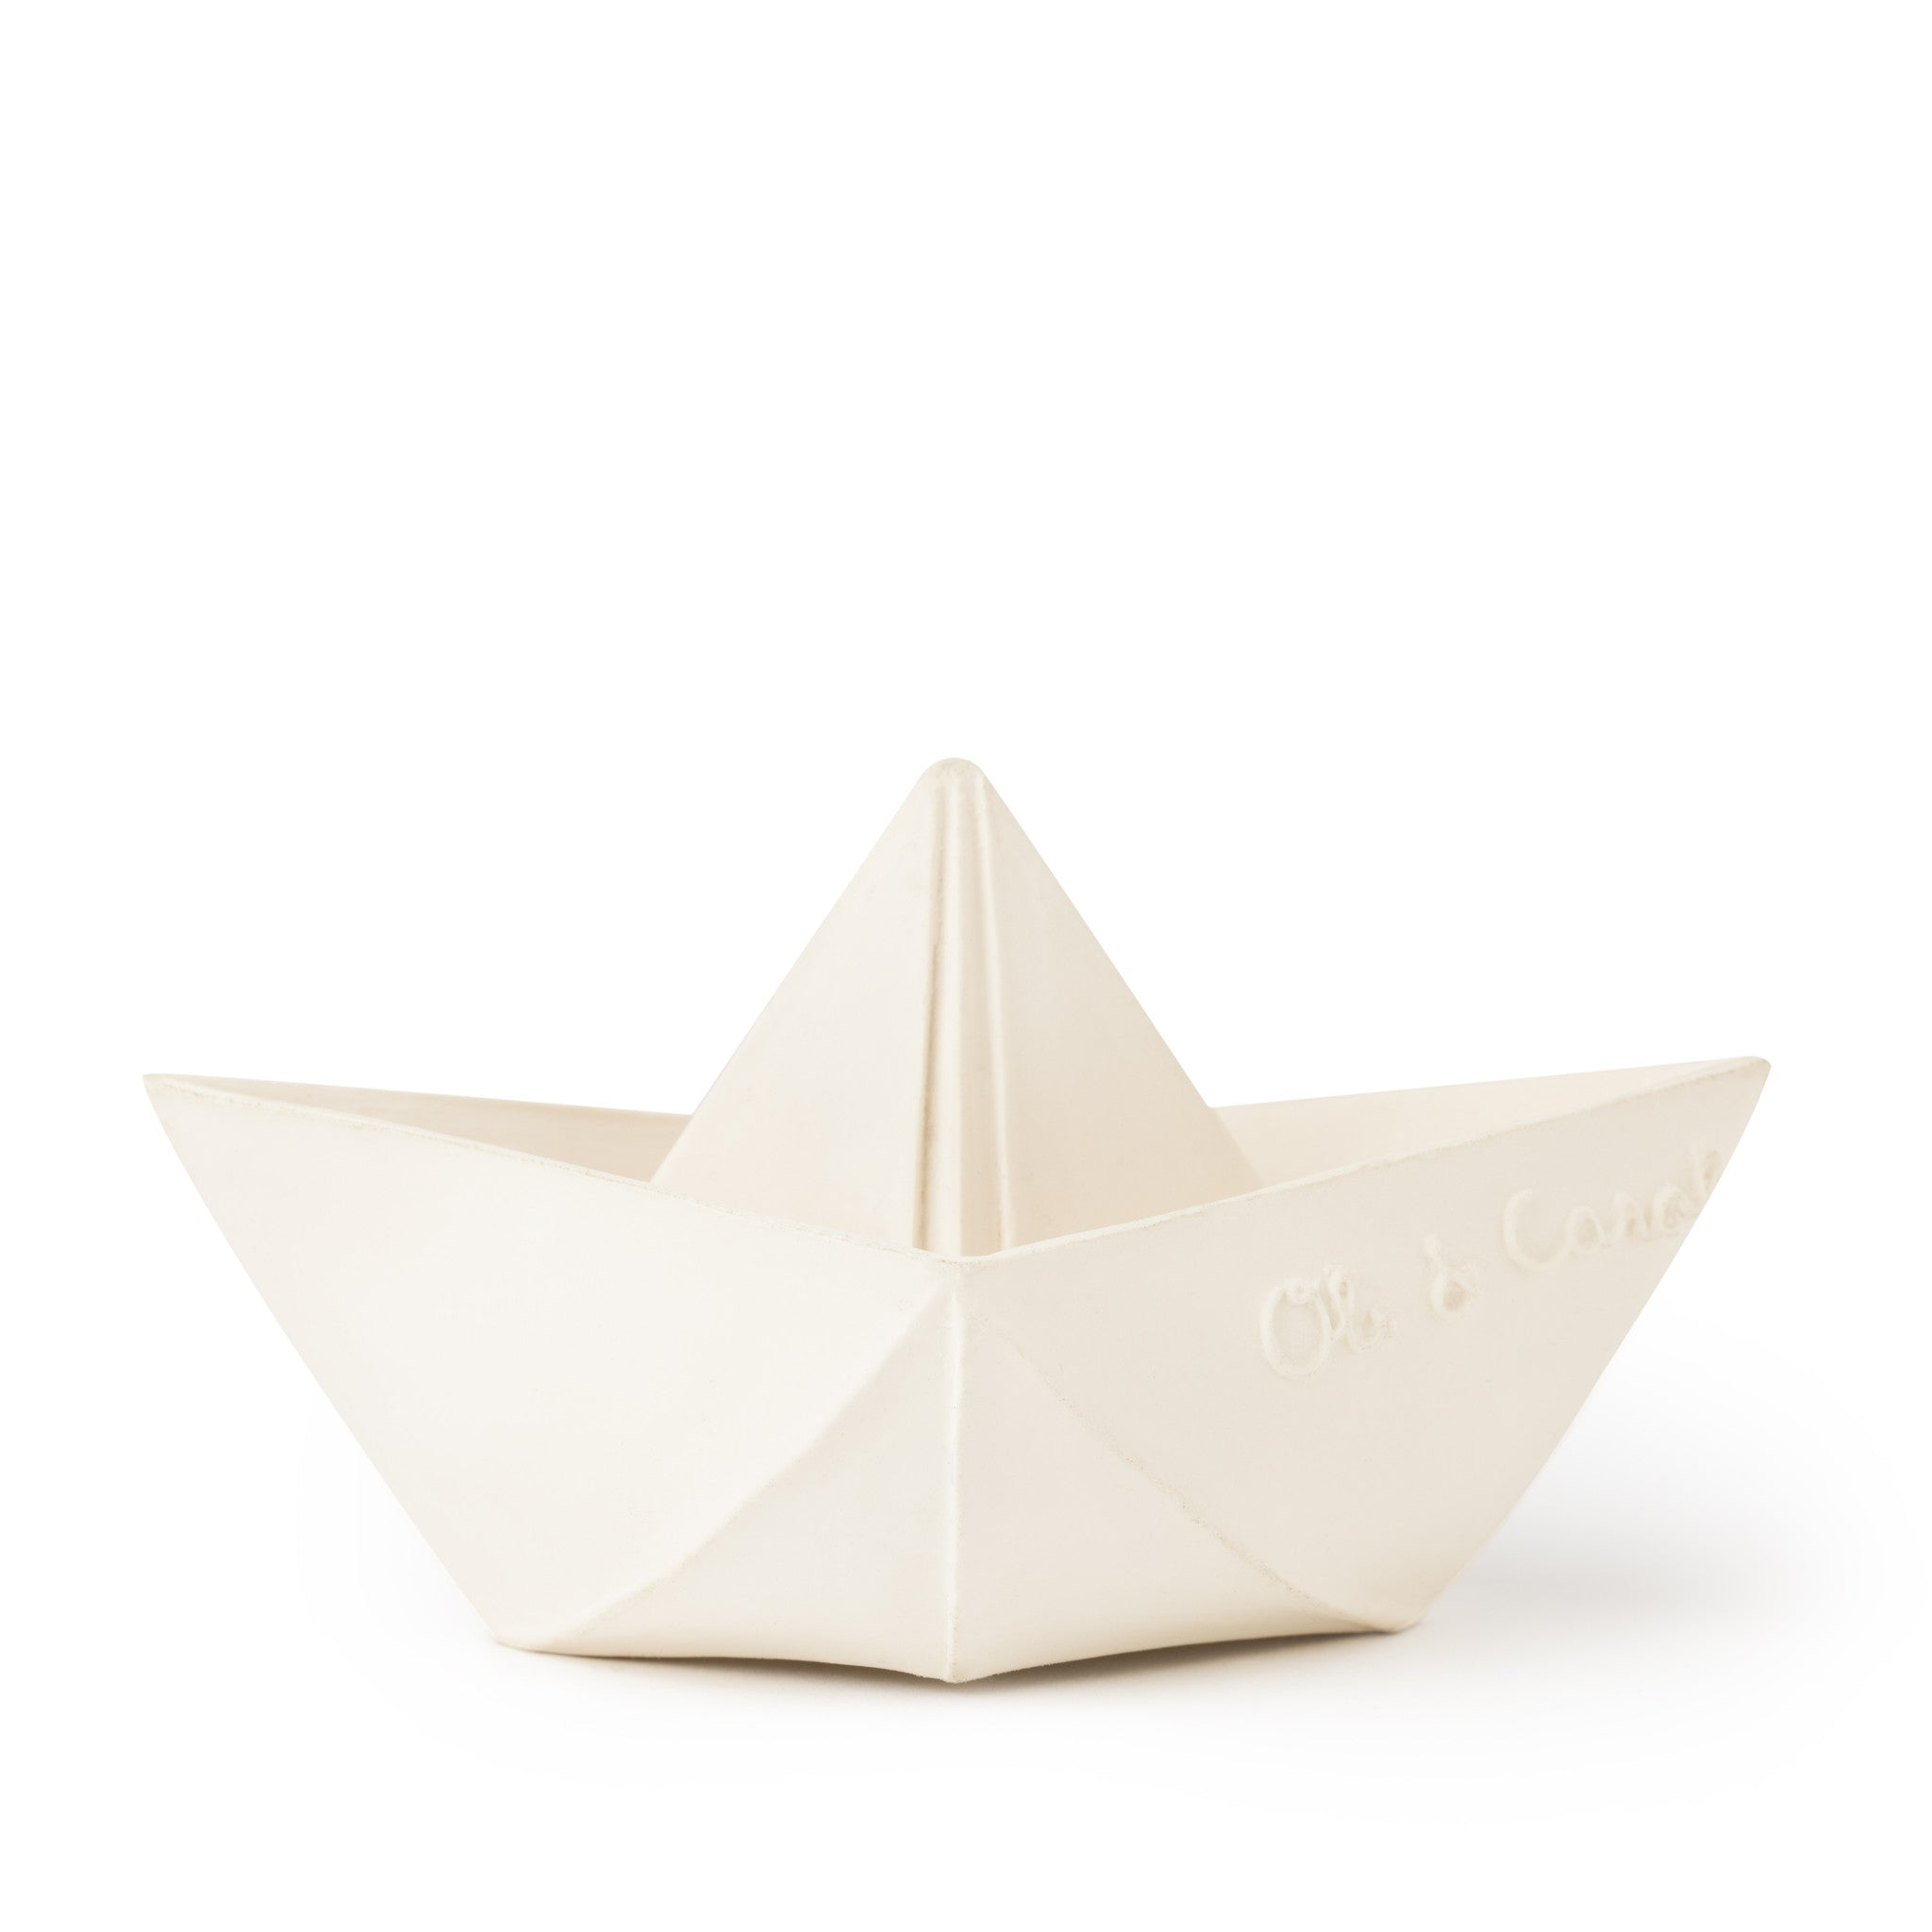 Oli Carol Origami Boat Rubber Toy Perfectly Smitten